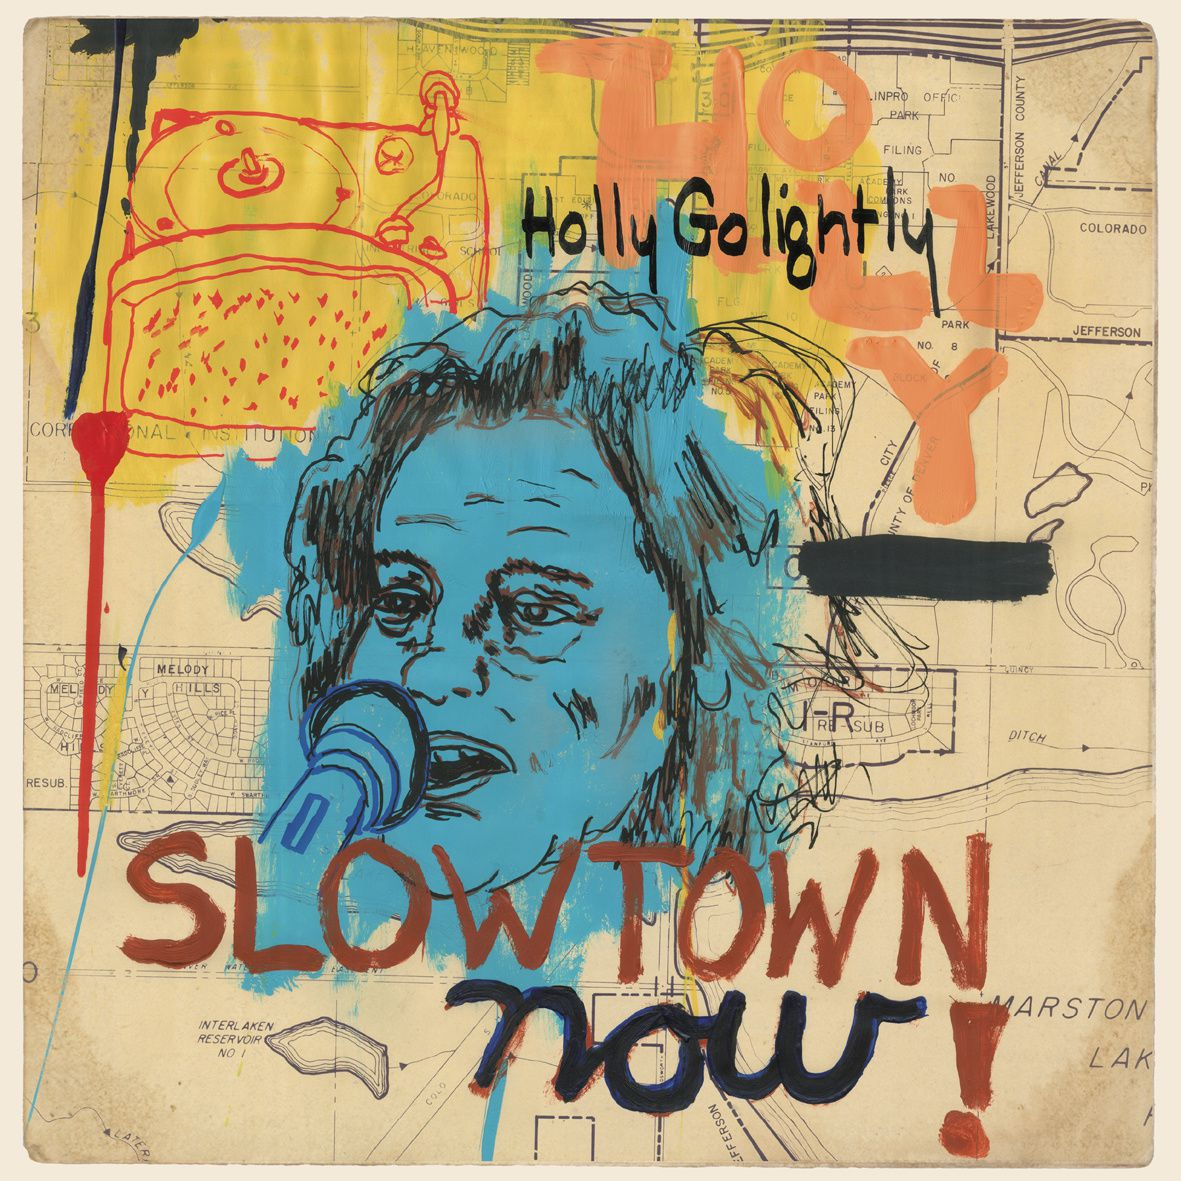 HOLLY GOLITHLY - Slow town ! (2015)